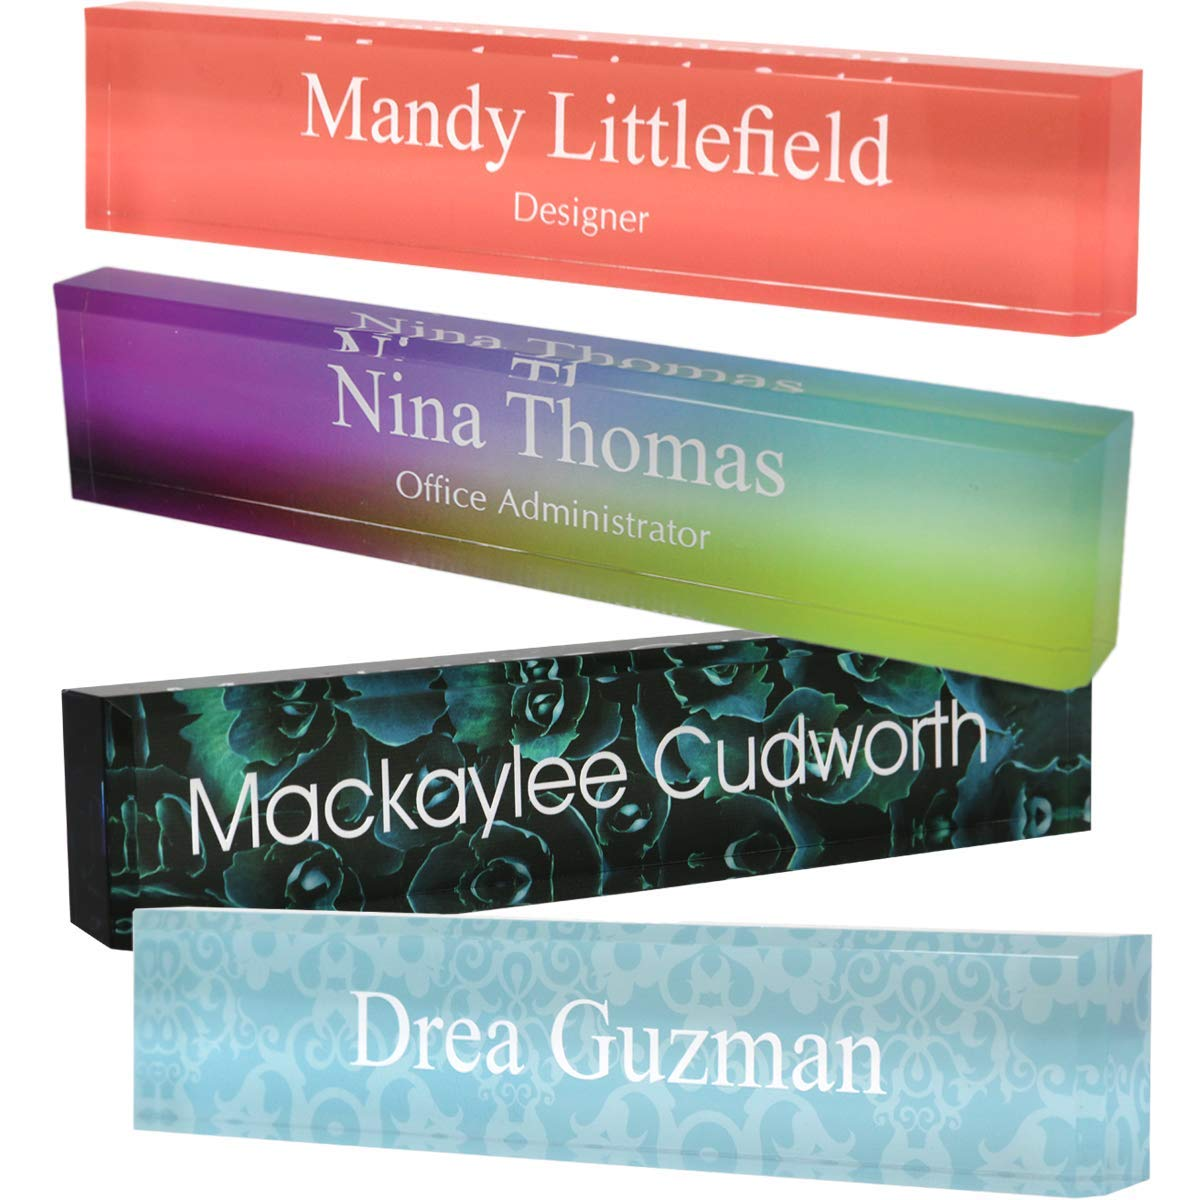 Personalized Acrylic Block Name Plate with Printed Background 2'' x 8'' by Naag Tag Inc.